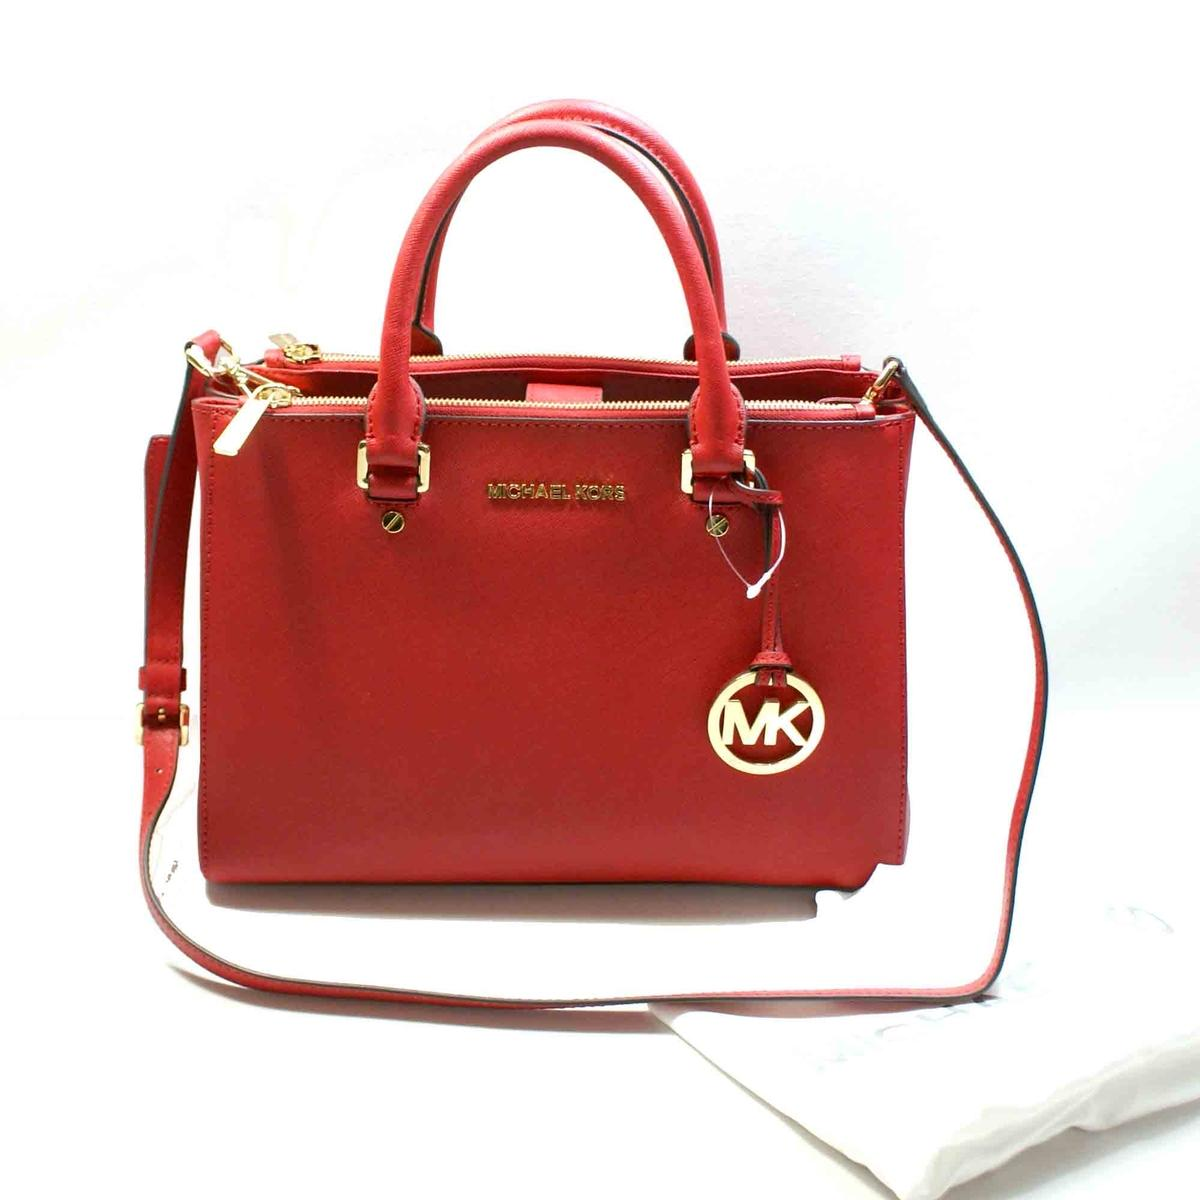 Michael Kors Sutton Medium Satchel Leather Bag Shoulder